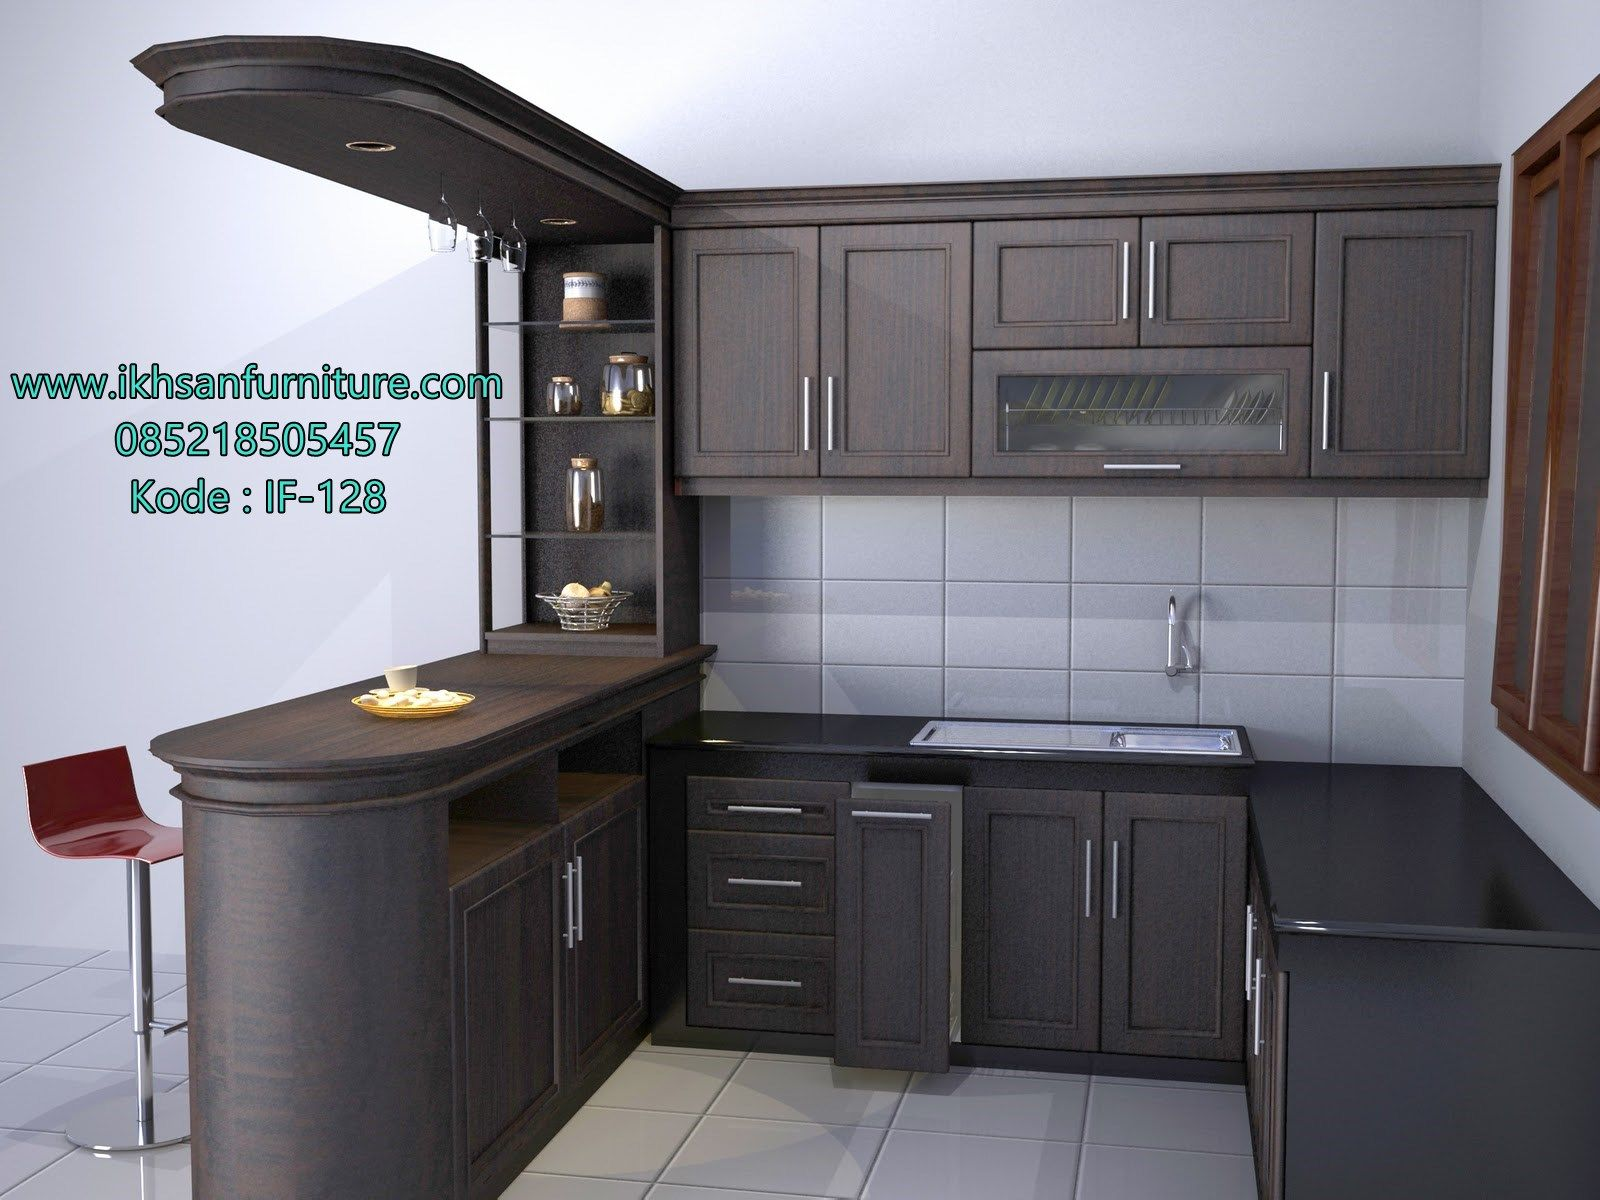 jual kitchen set minimalis elegan model